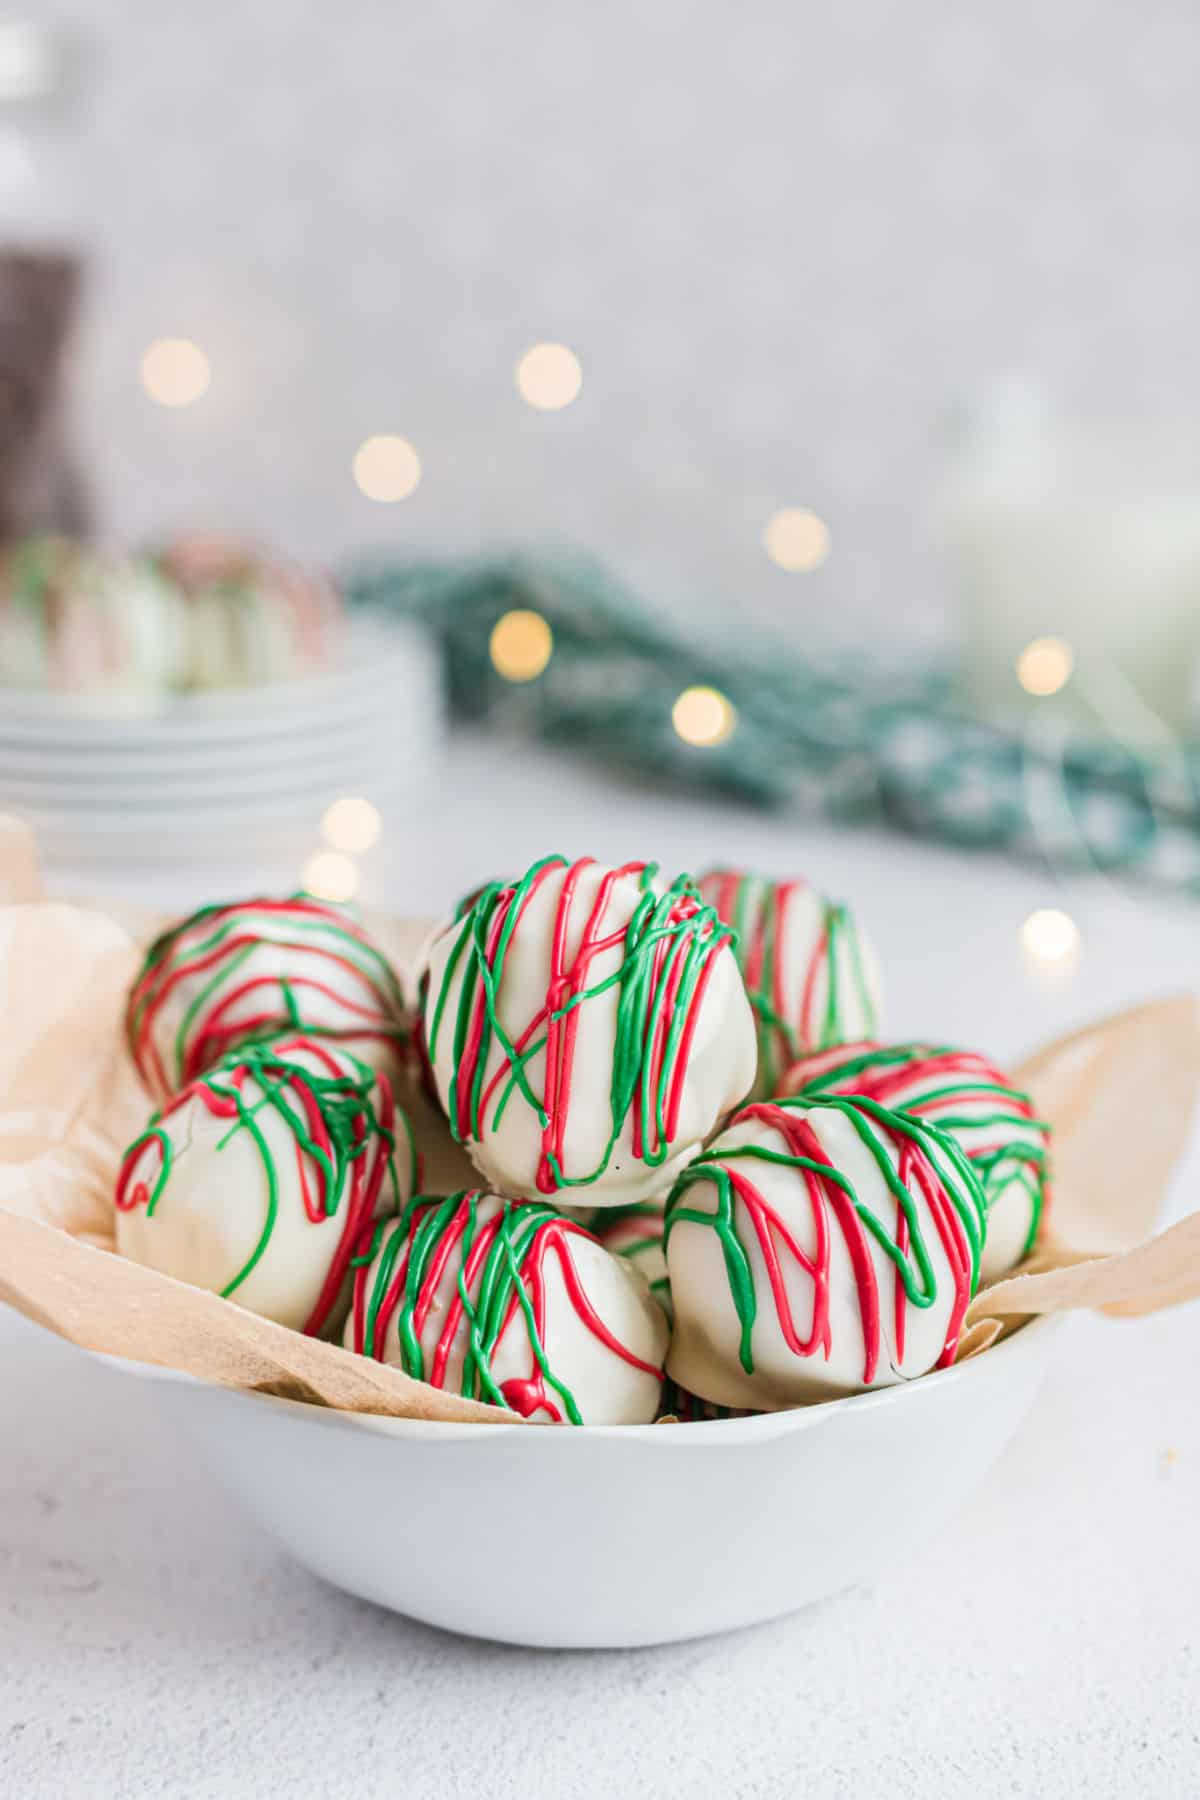 Almond truffles in white bowl with christmas lights in background.